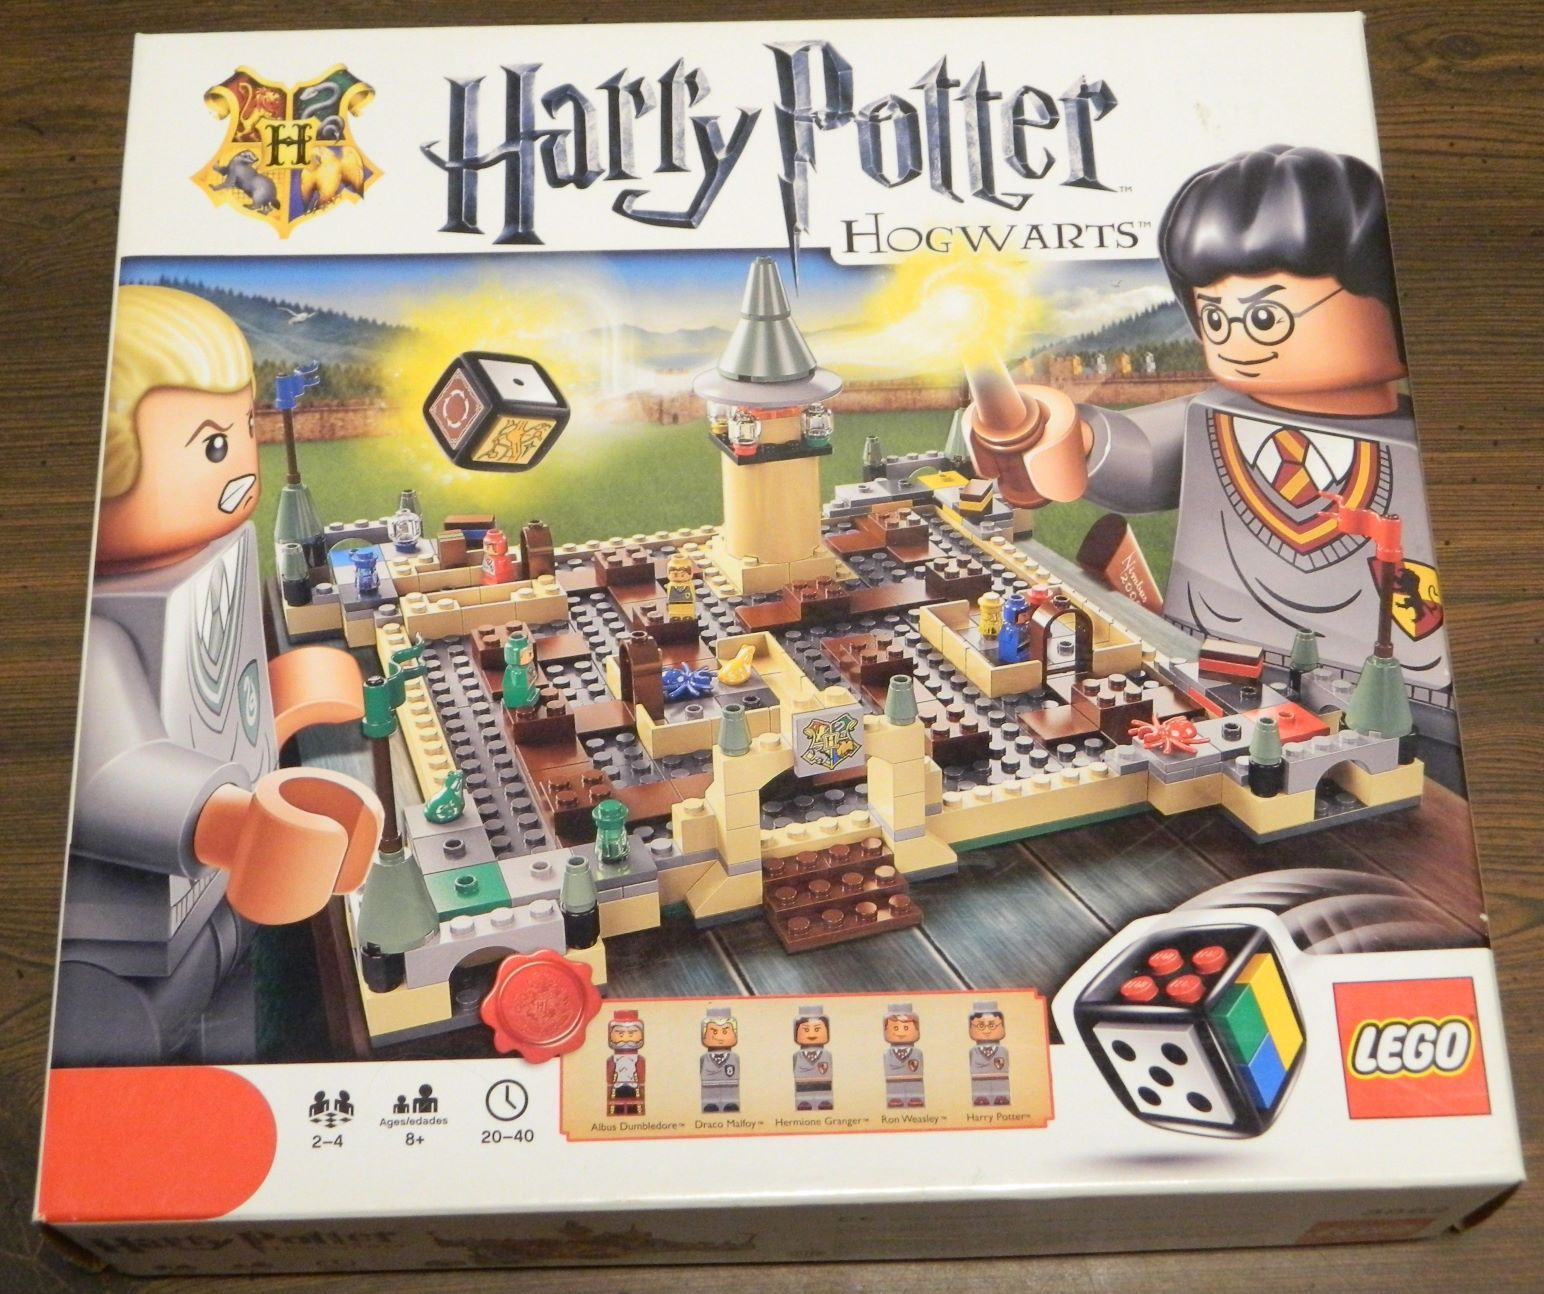 Box for LEGO Harry Potter Hogwarts